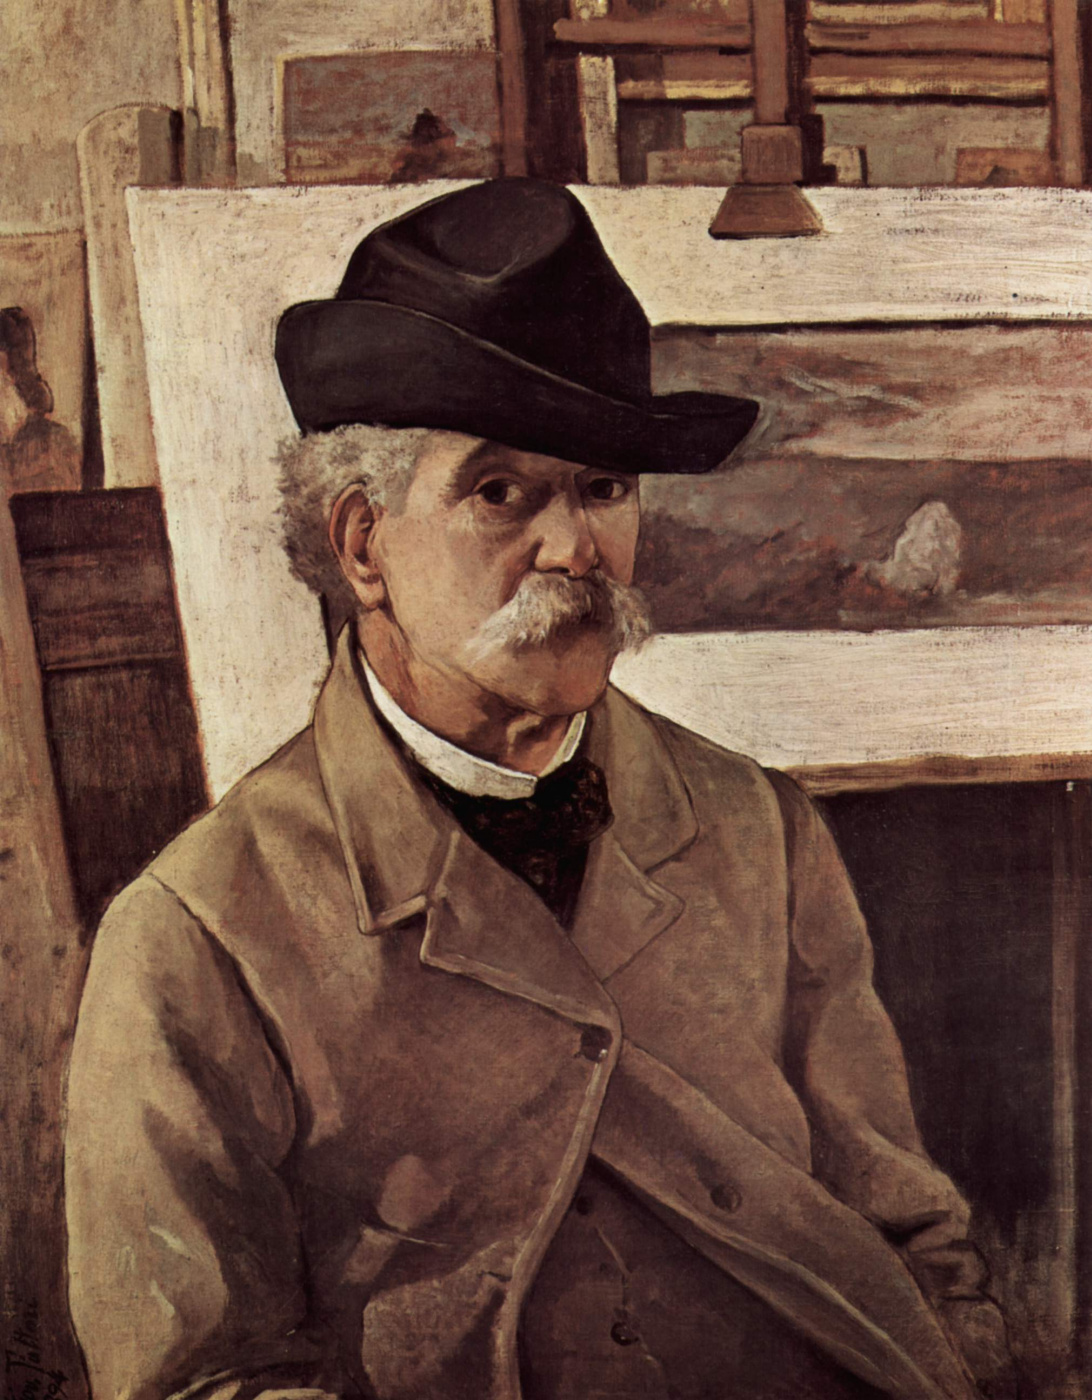 Giovanni Fattori. Self-portrait at sixty